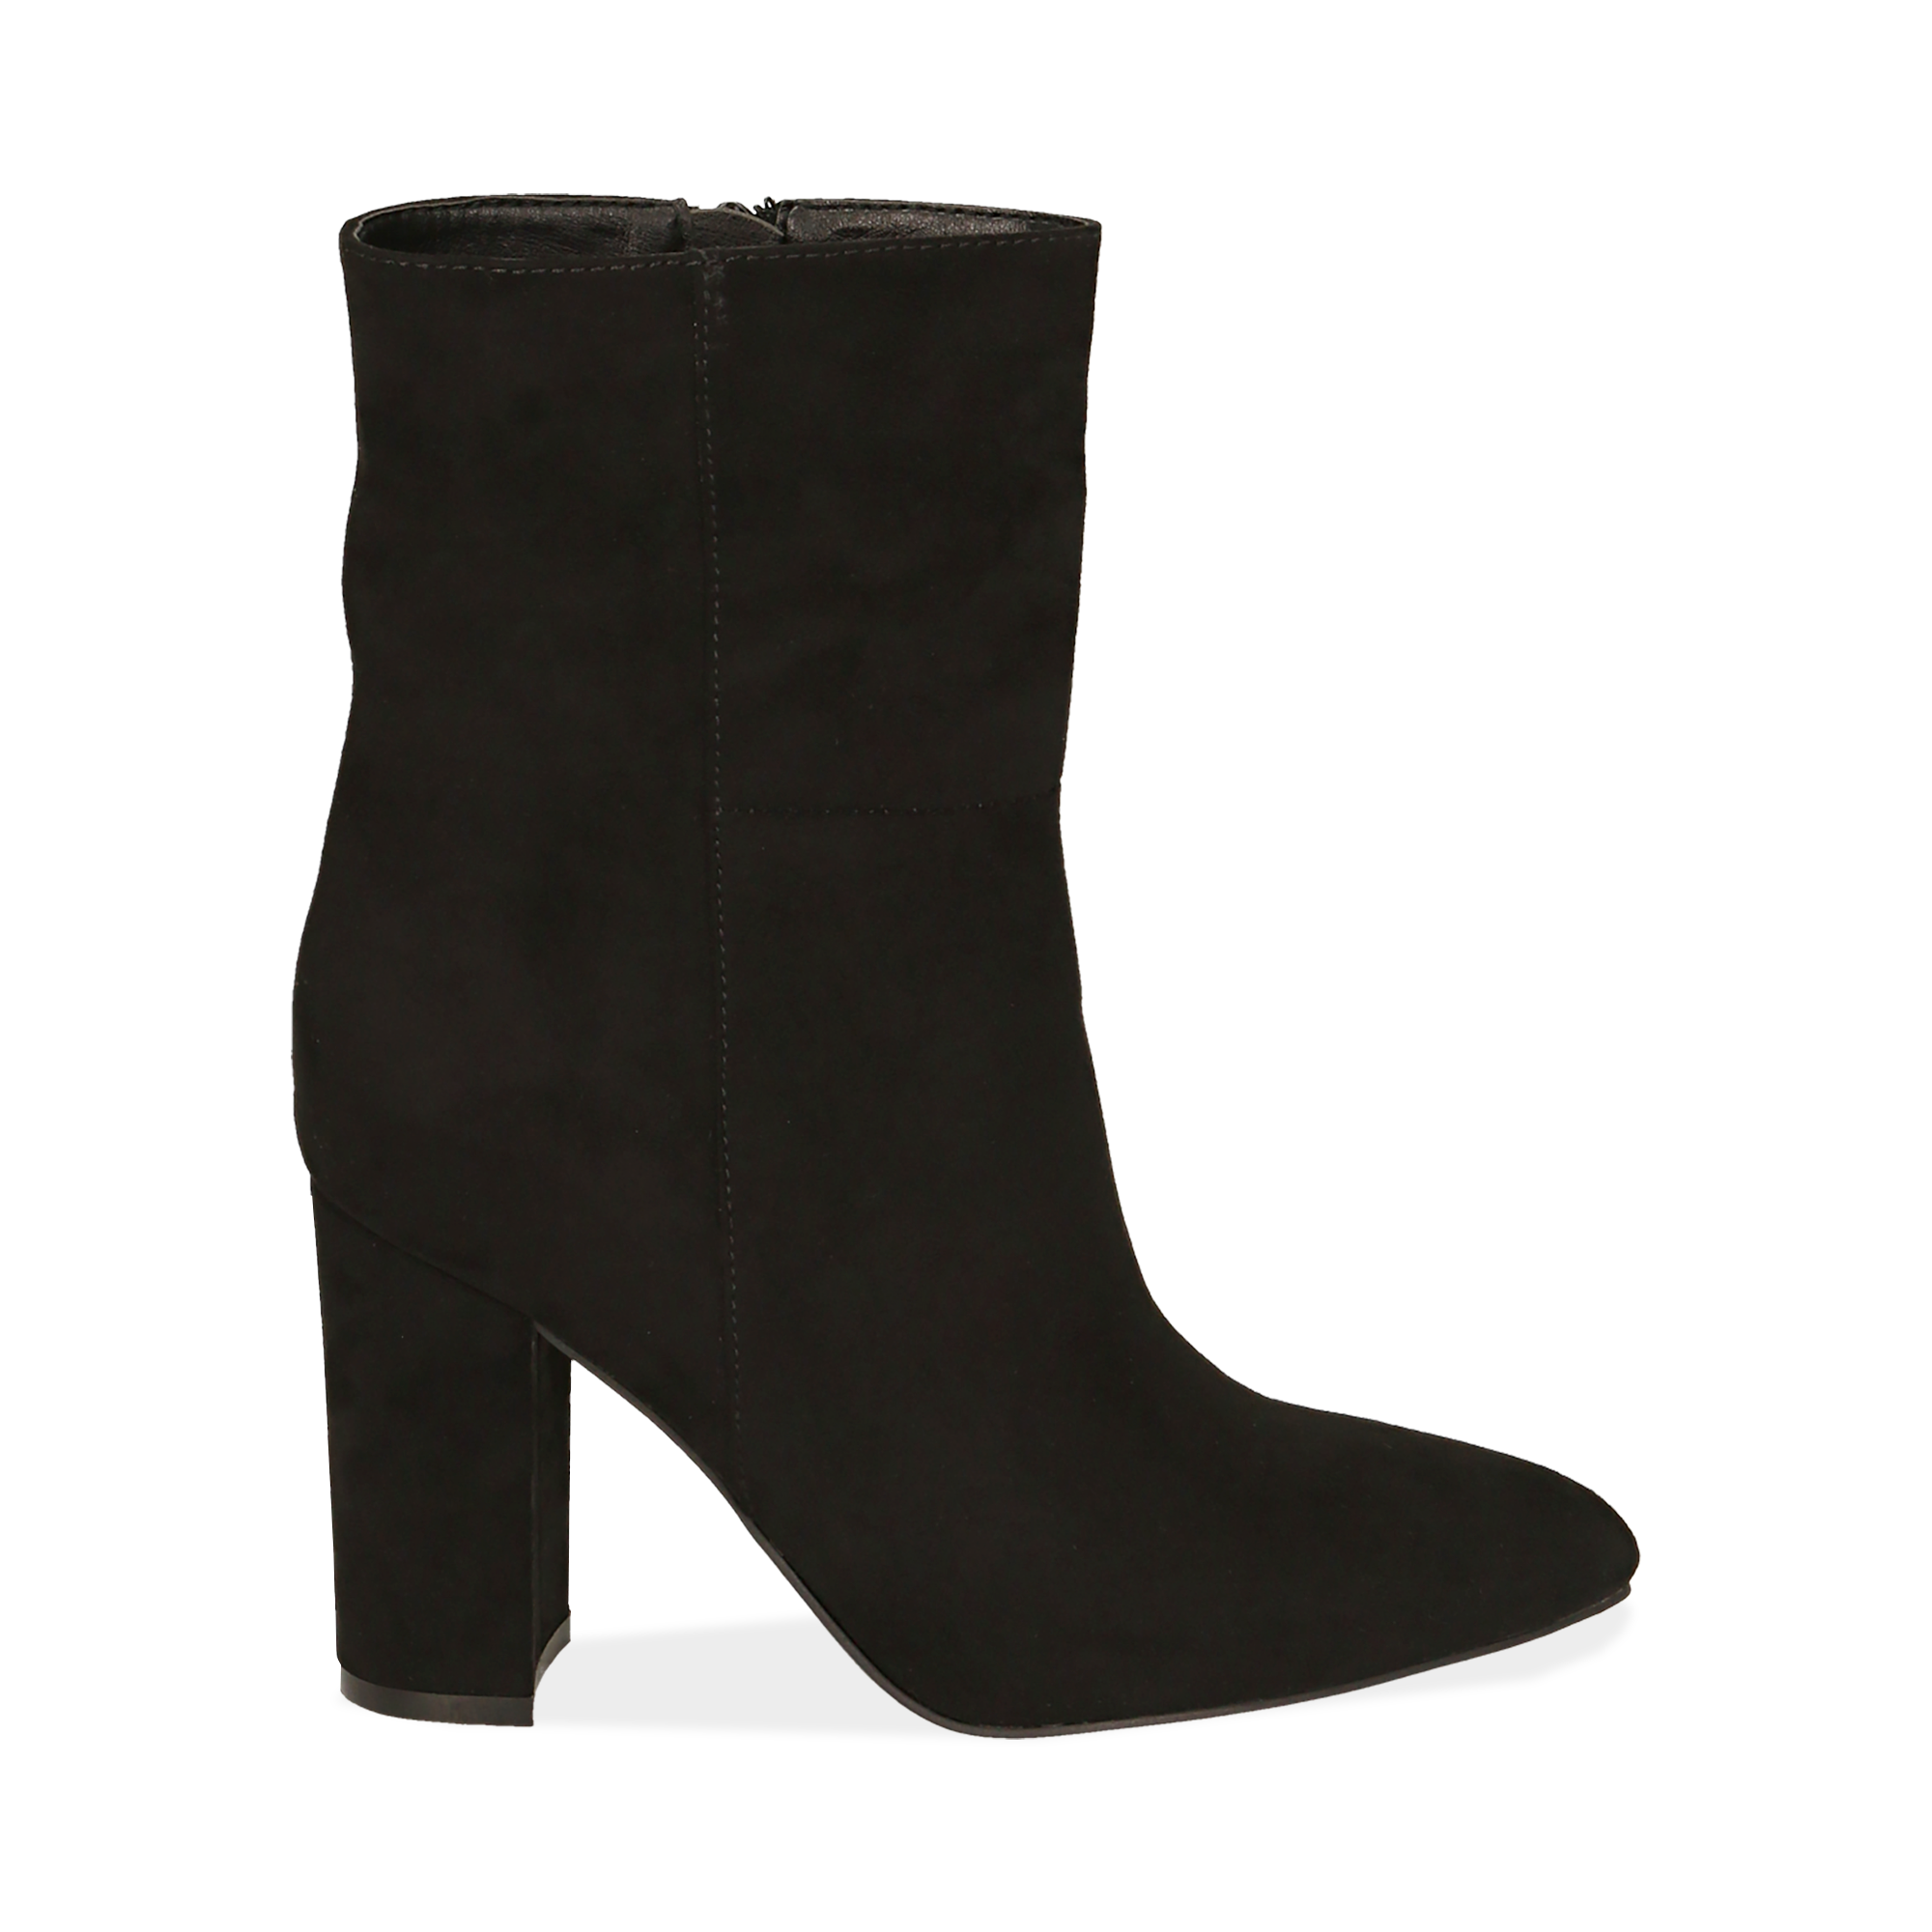 Ankle boots neri in microfibra, tacco 9,50 cm